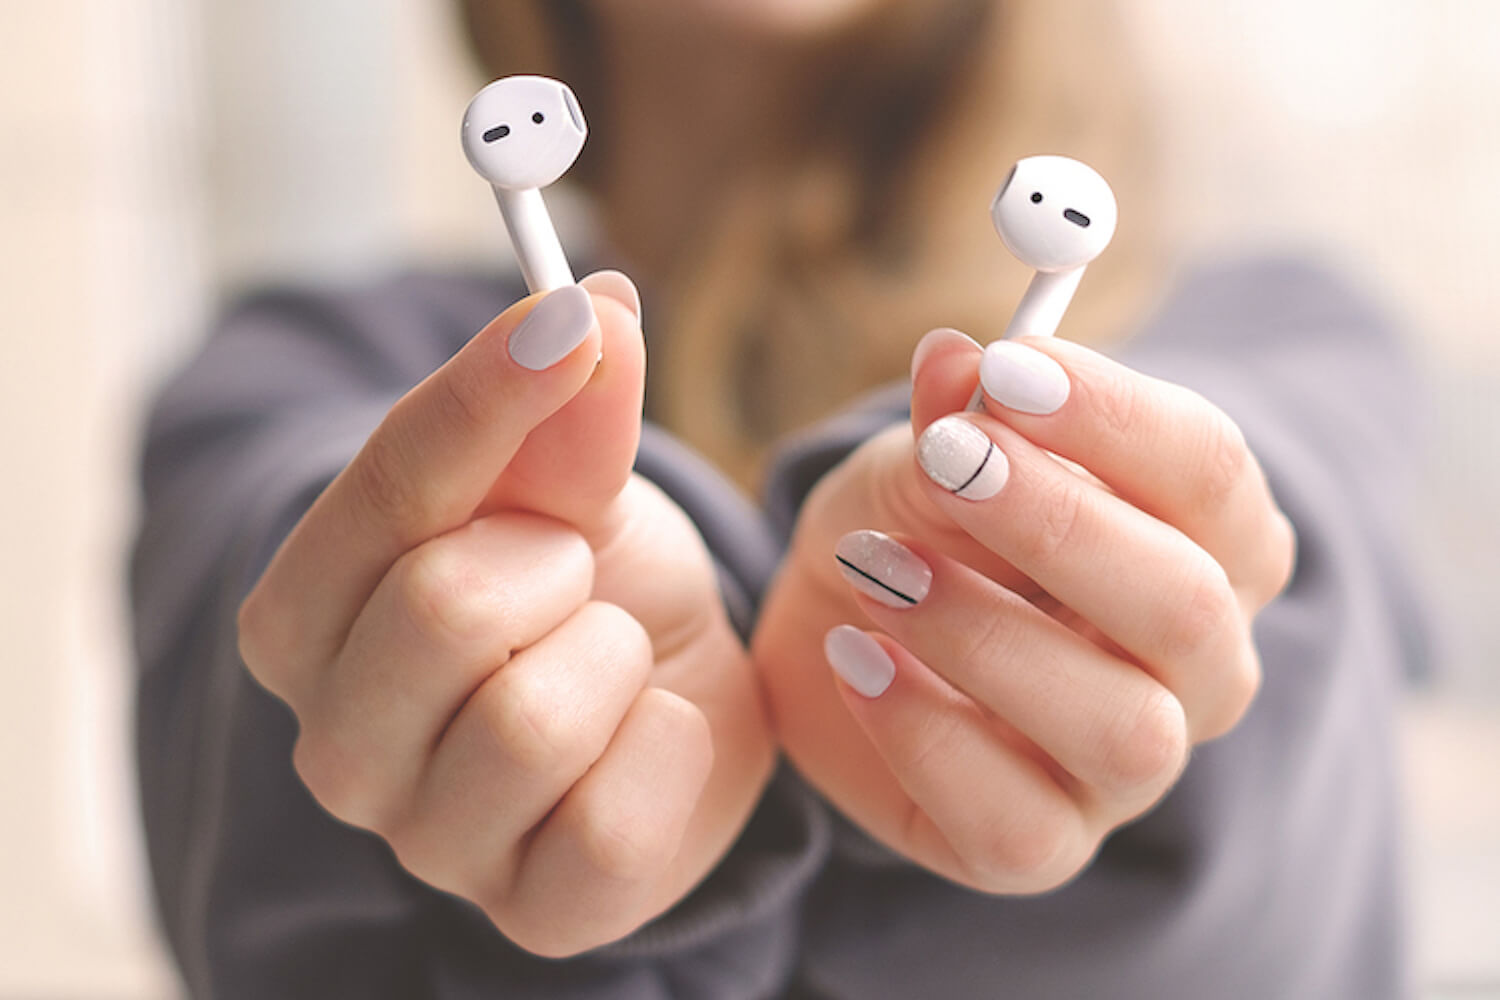 Hands holding AirPods.